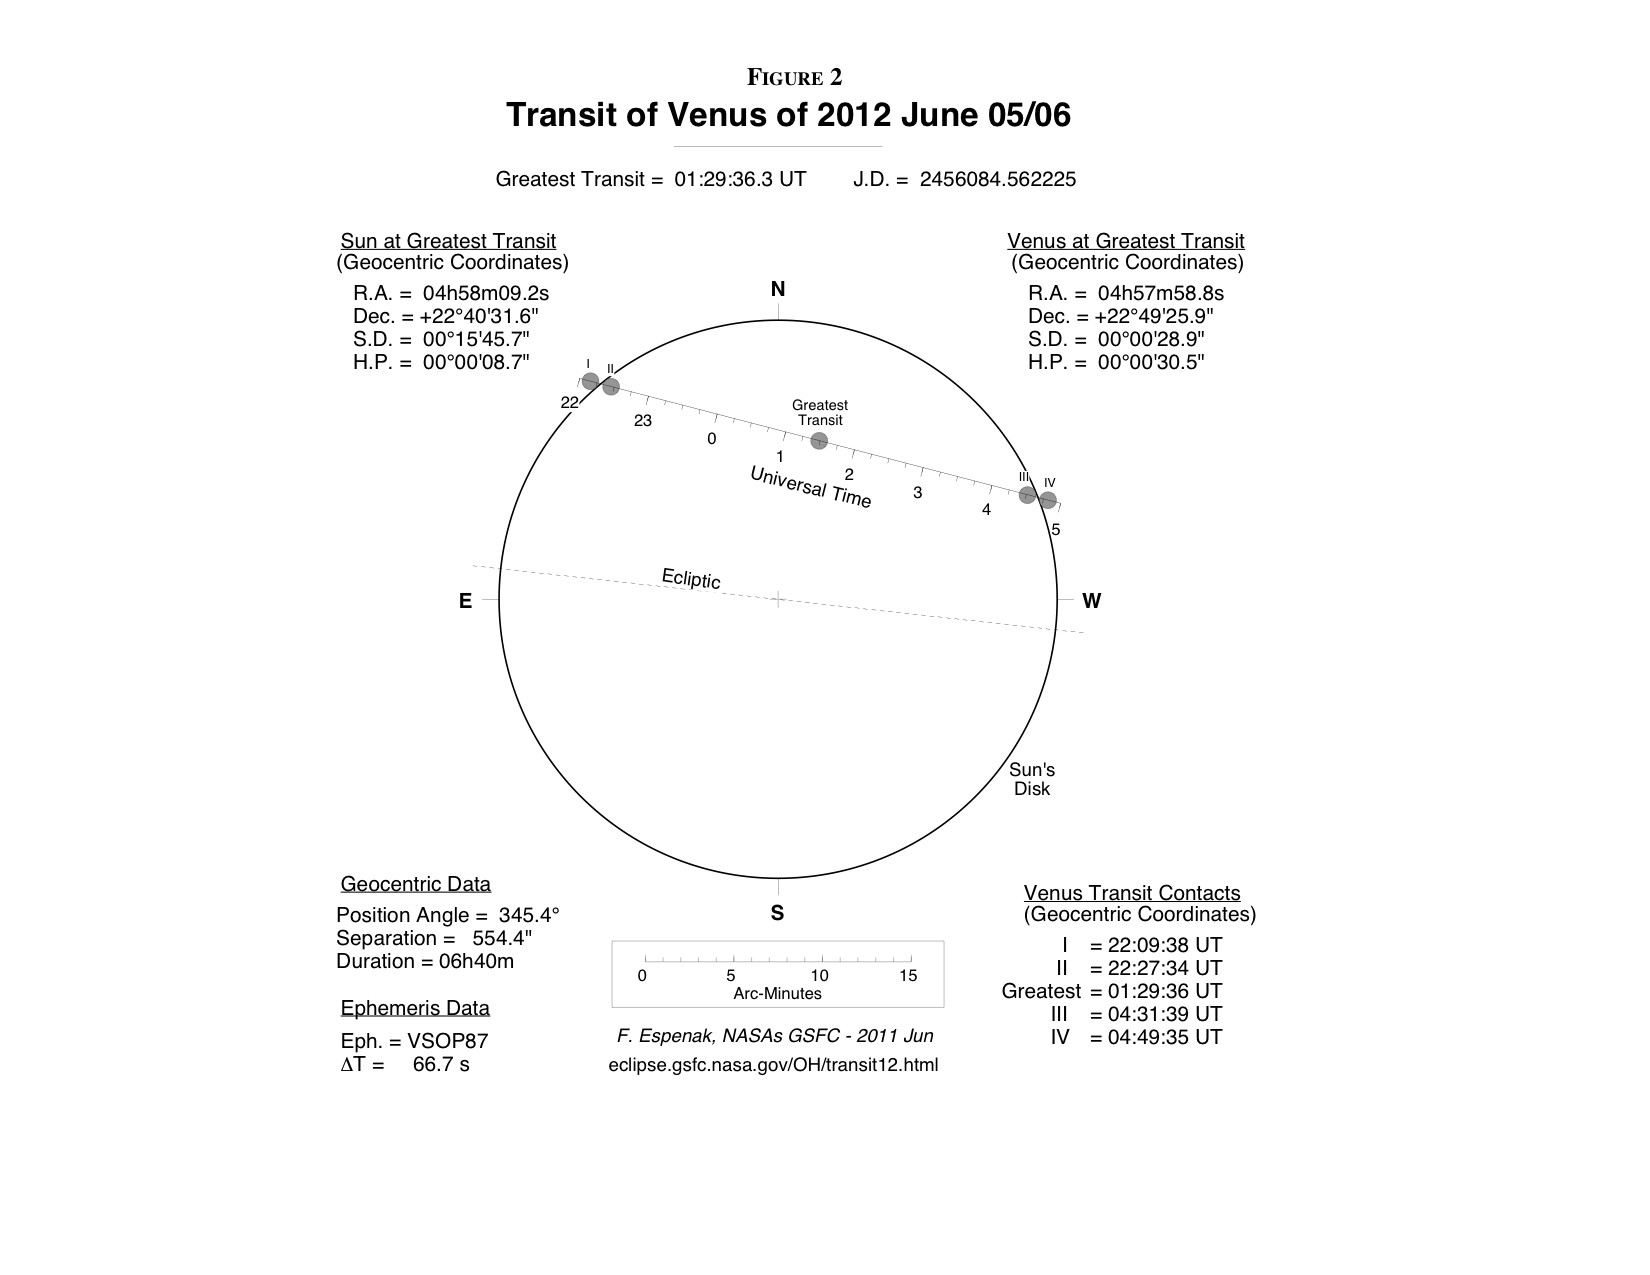 Figure showing the Transit of Venus 2012